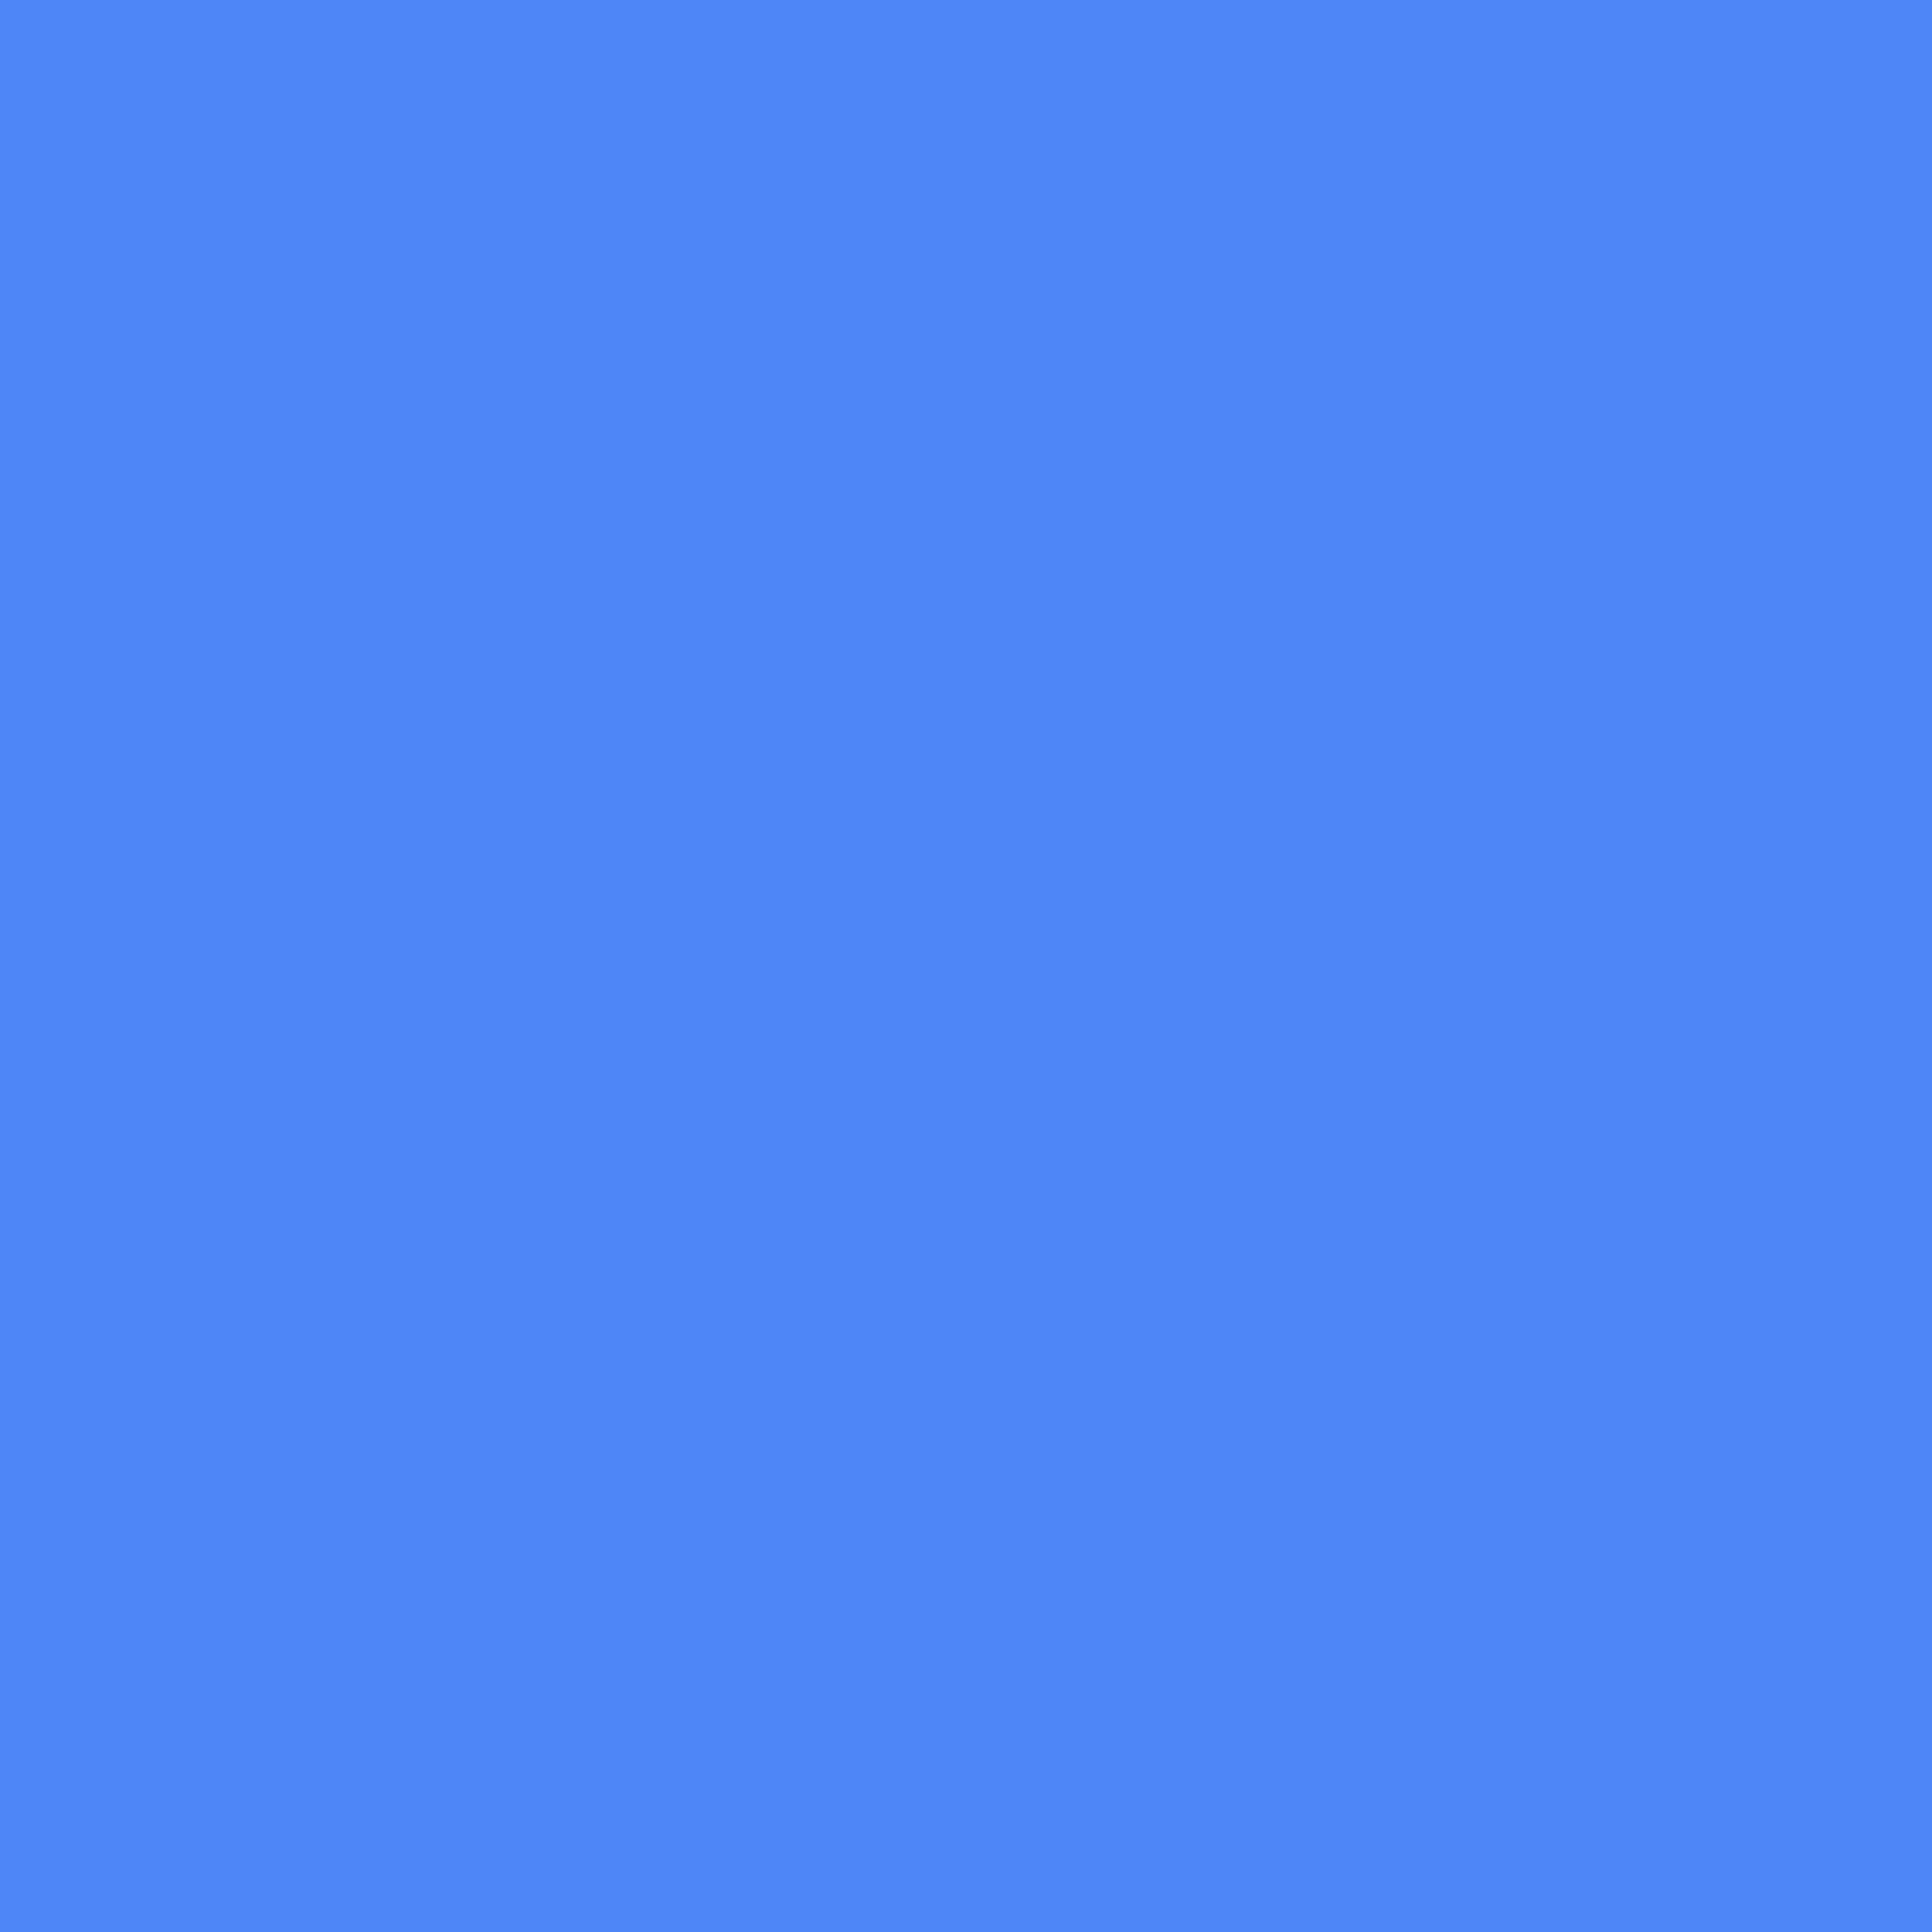 2732x2732 Blueberry Solid Color Background